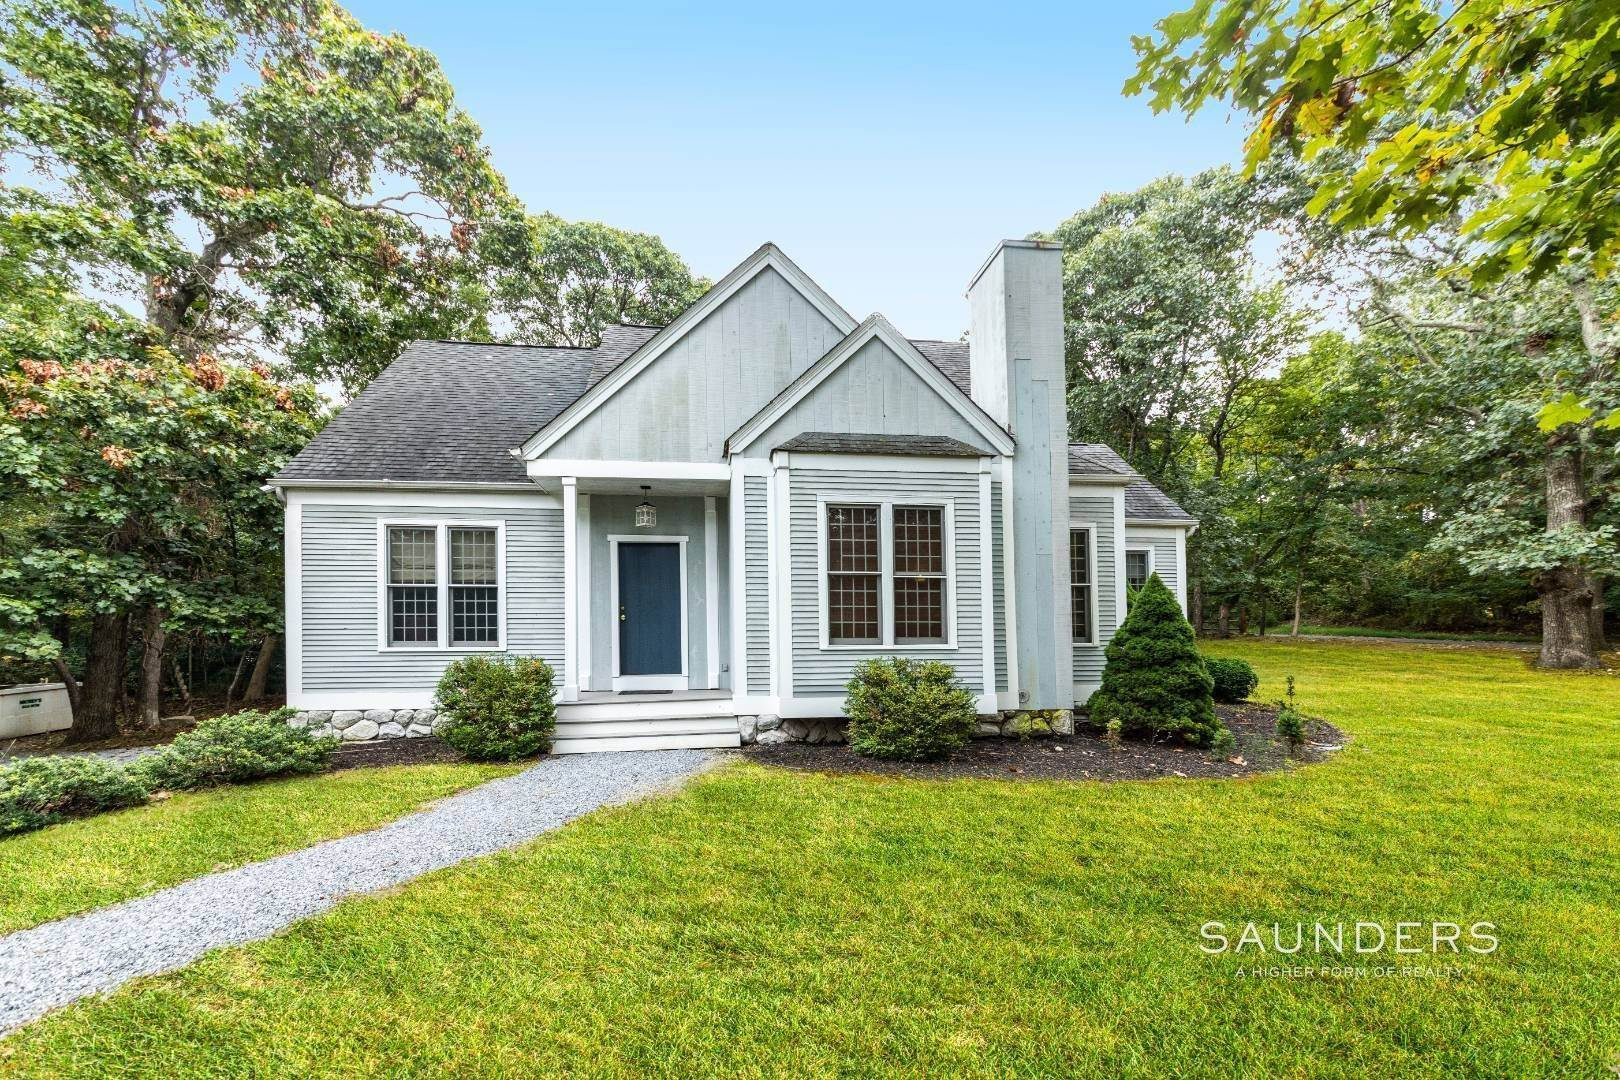 Single Family Homes for Sale at North Haven- New To Market In North Haven Manor 3 Cedar Avenue (Mailbox Says 2 Actors Colony ), Sag Harbor, Southampton Town, NY 11963